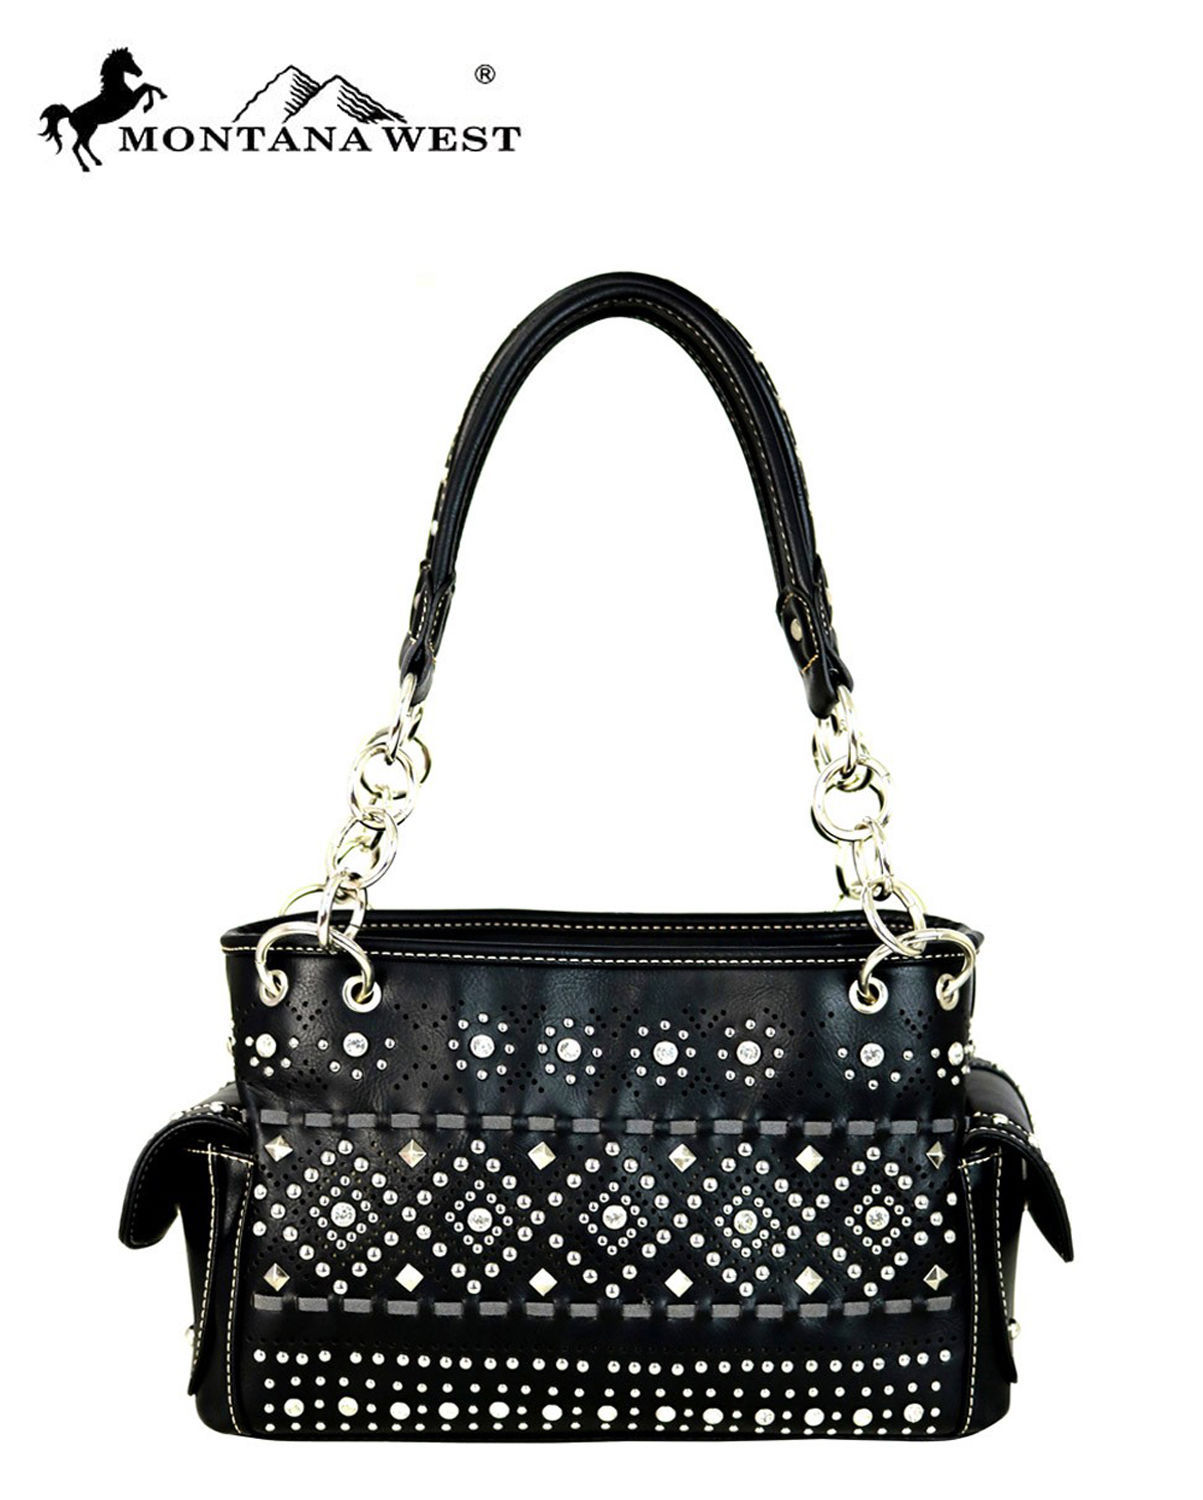 Bling Rhinestone Studded Chain Handle Bag Shoulder Purse Montana West Black